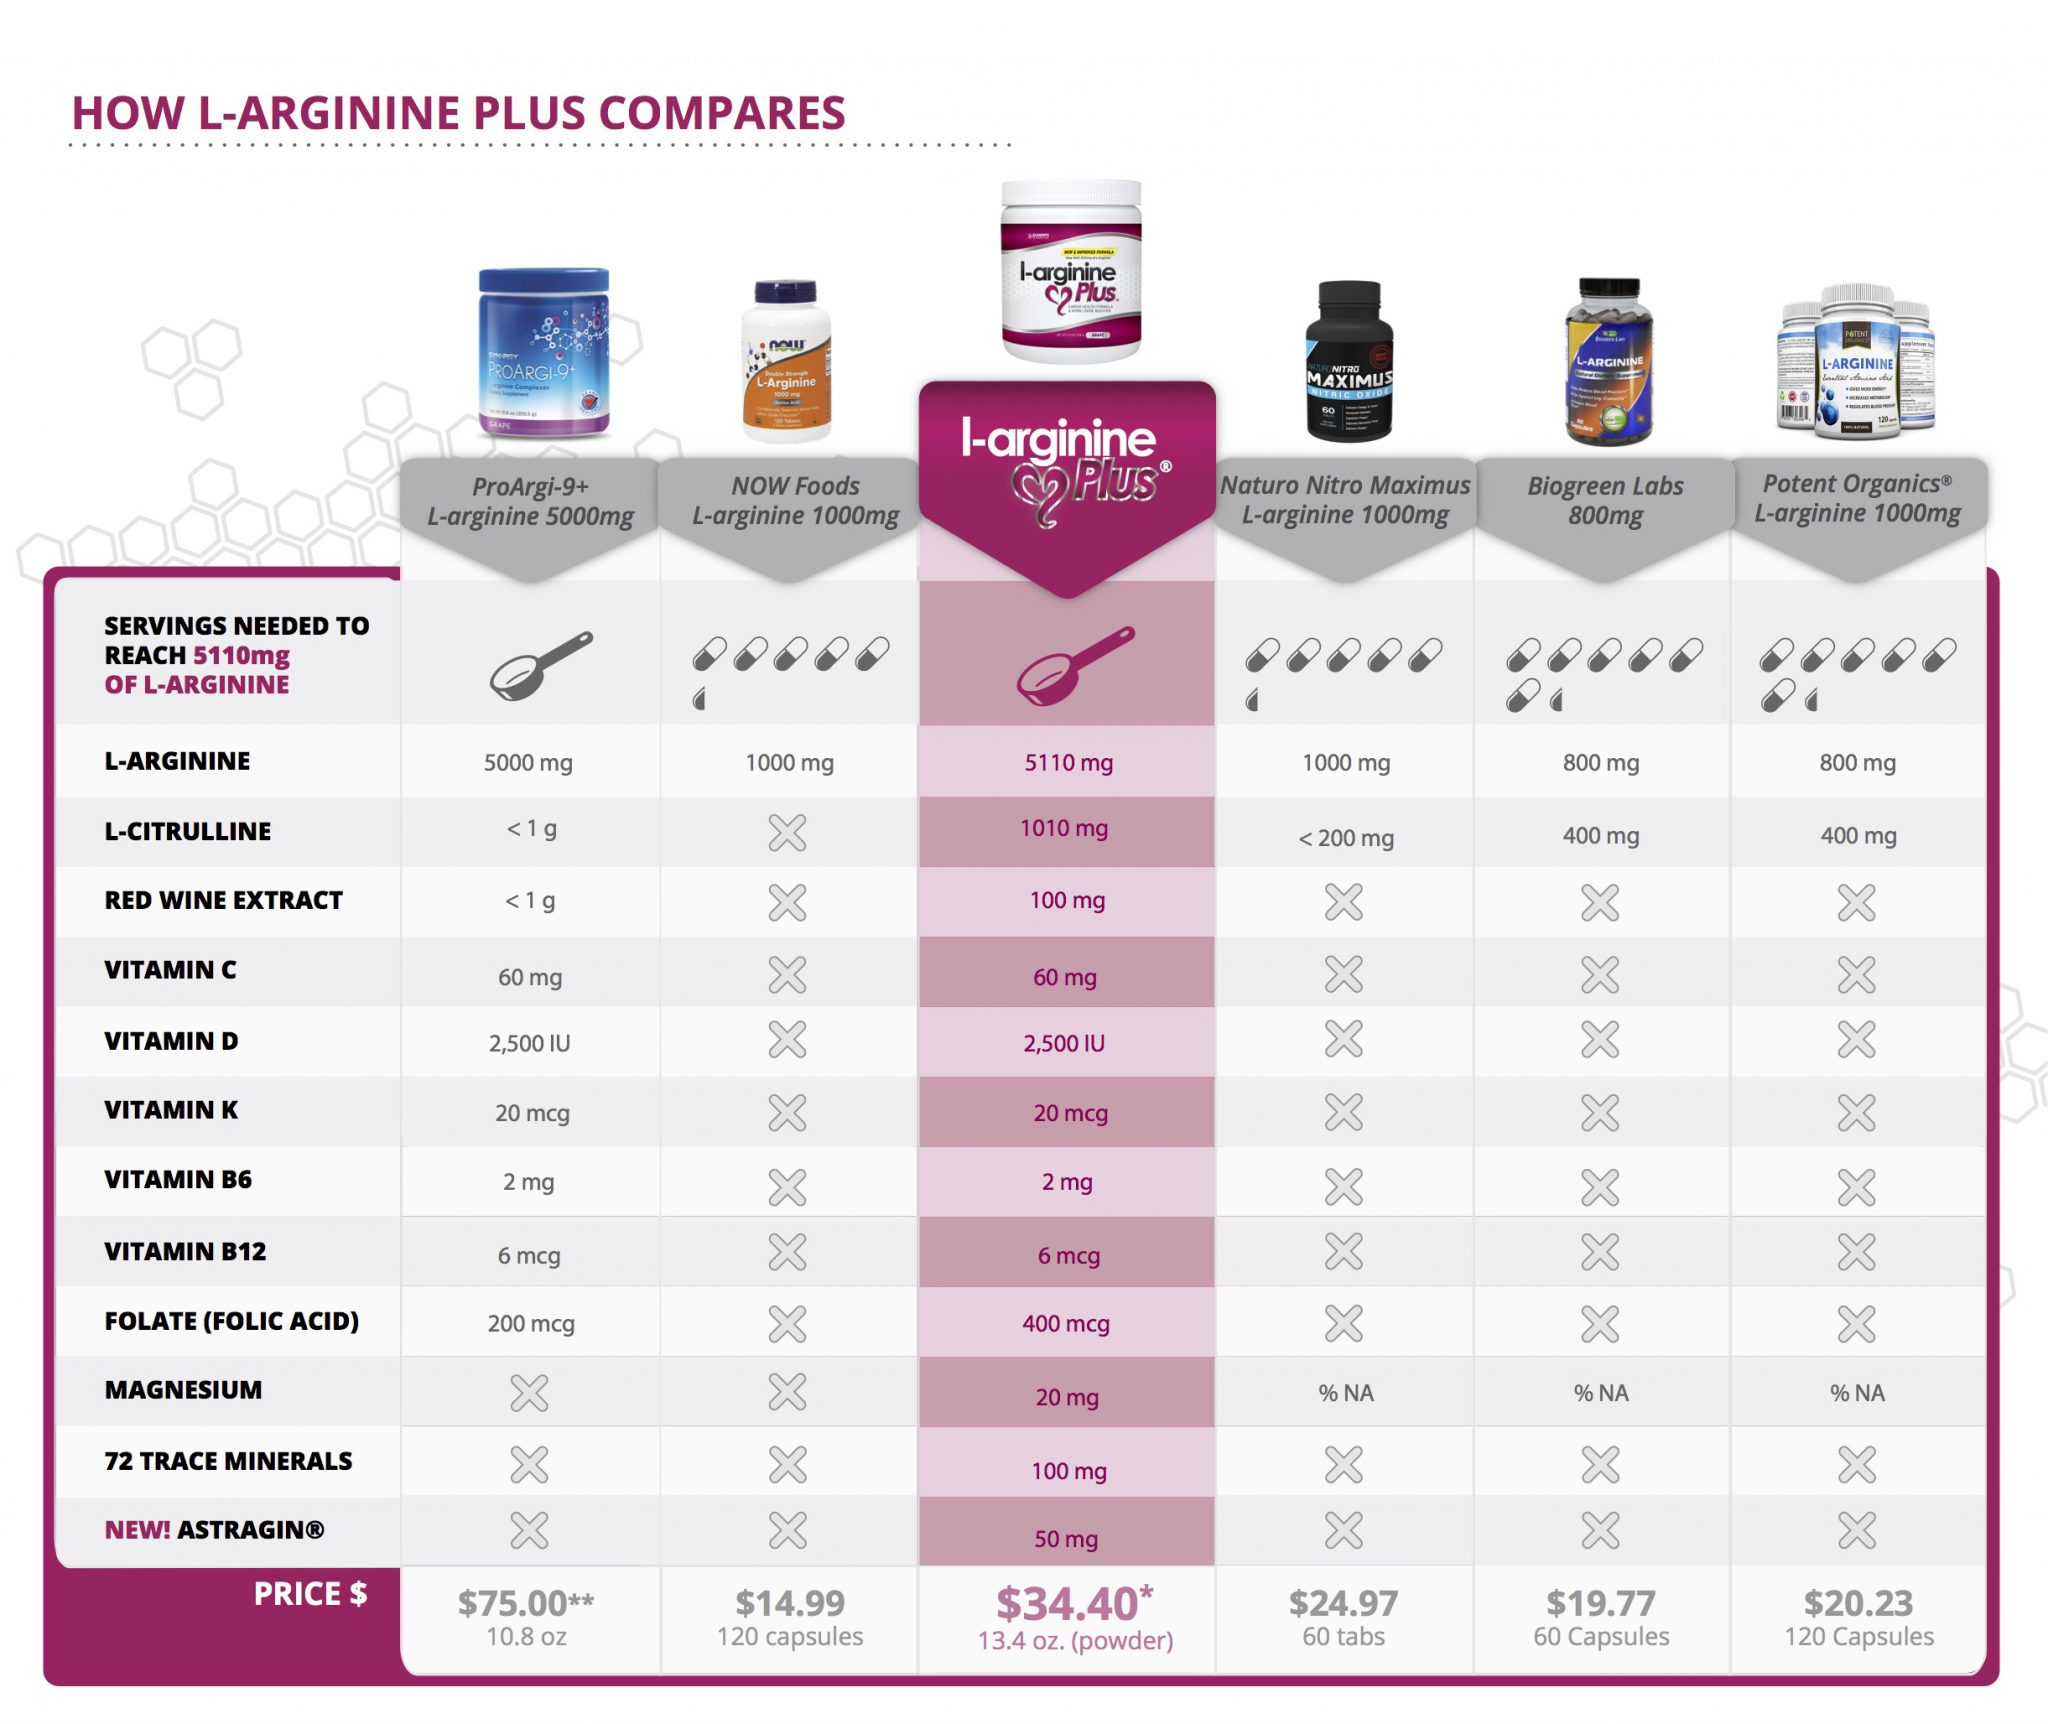 l-arginine plus is the best there is